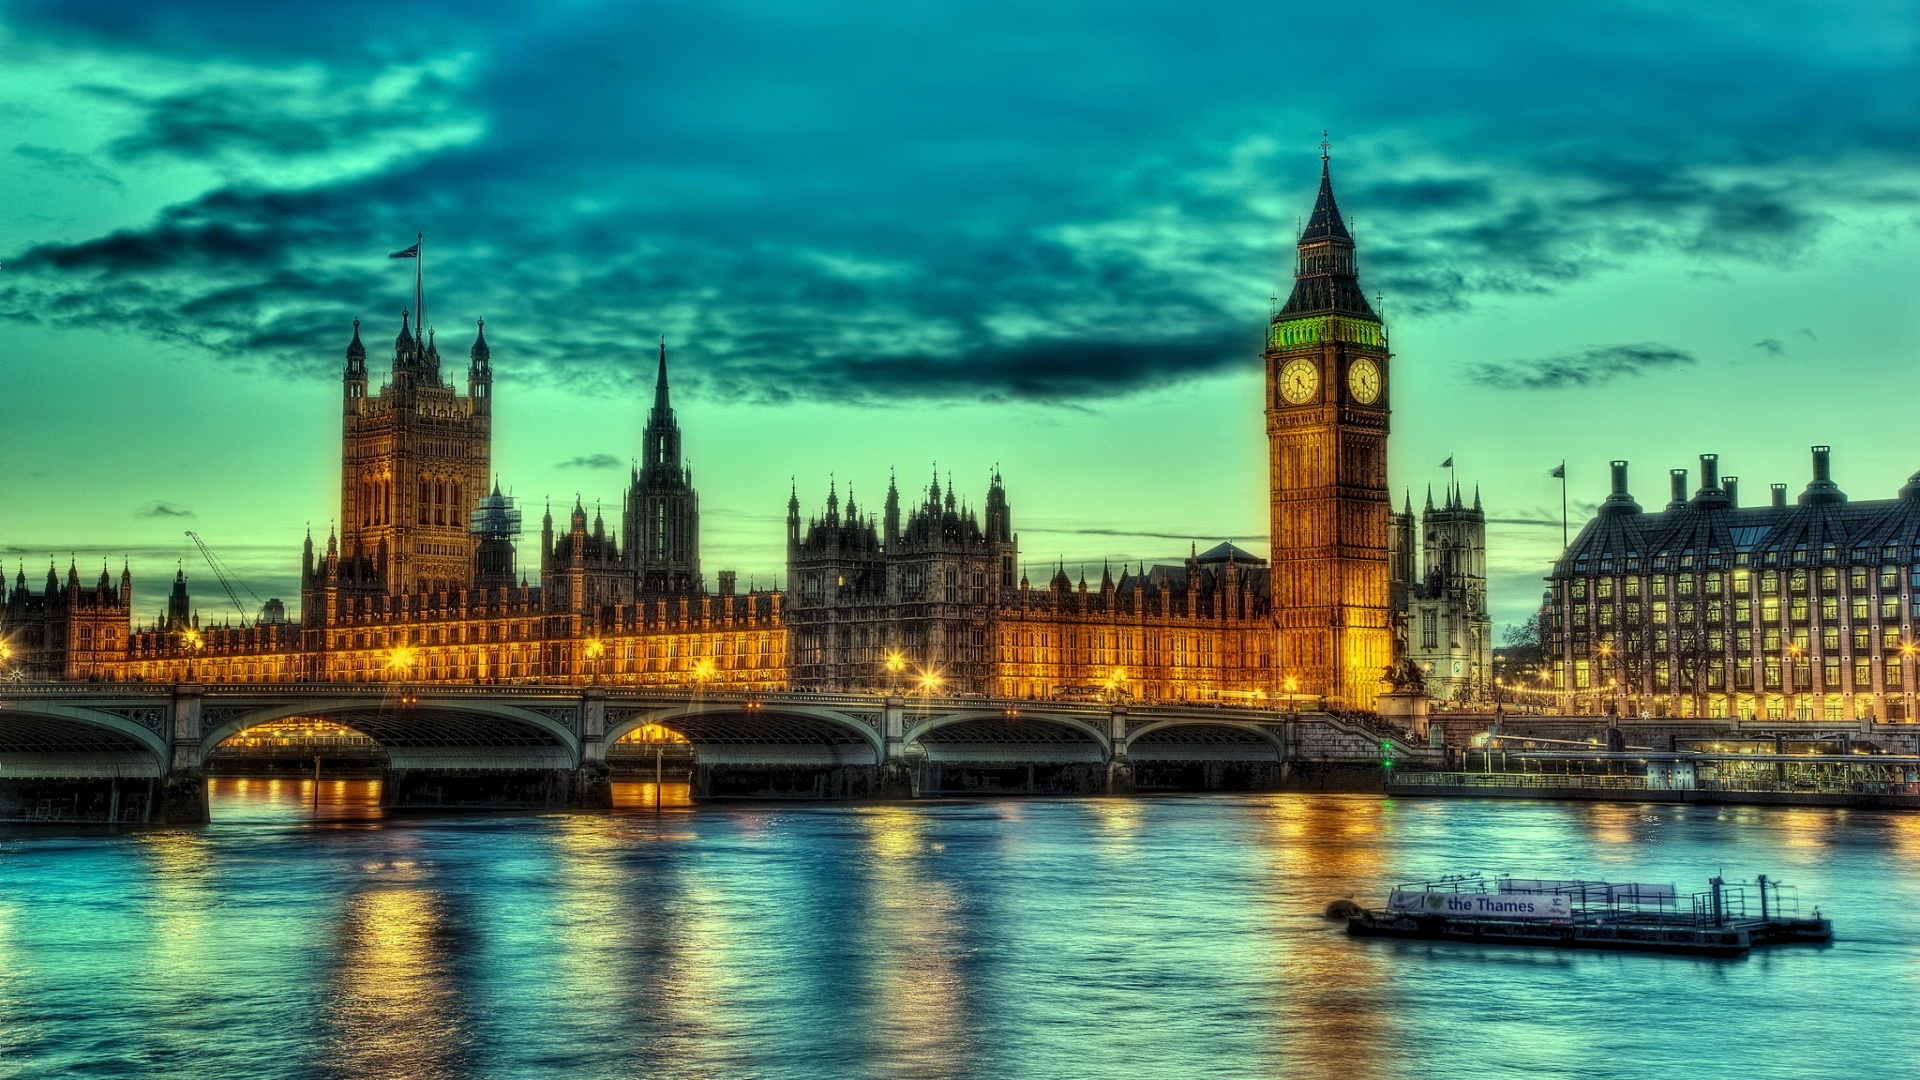 London Landscape Wallpaper HD Wallpaper WallpaperLepi 1920x1080